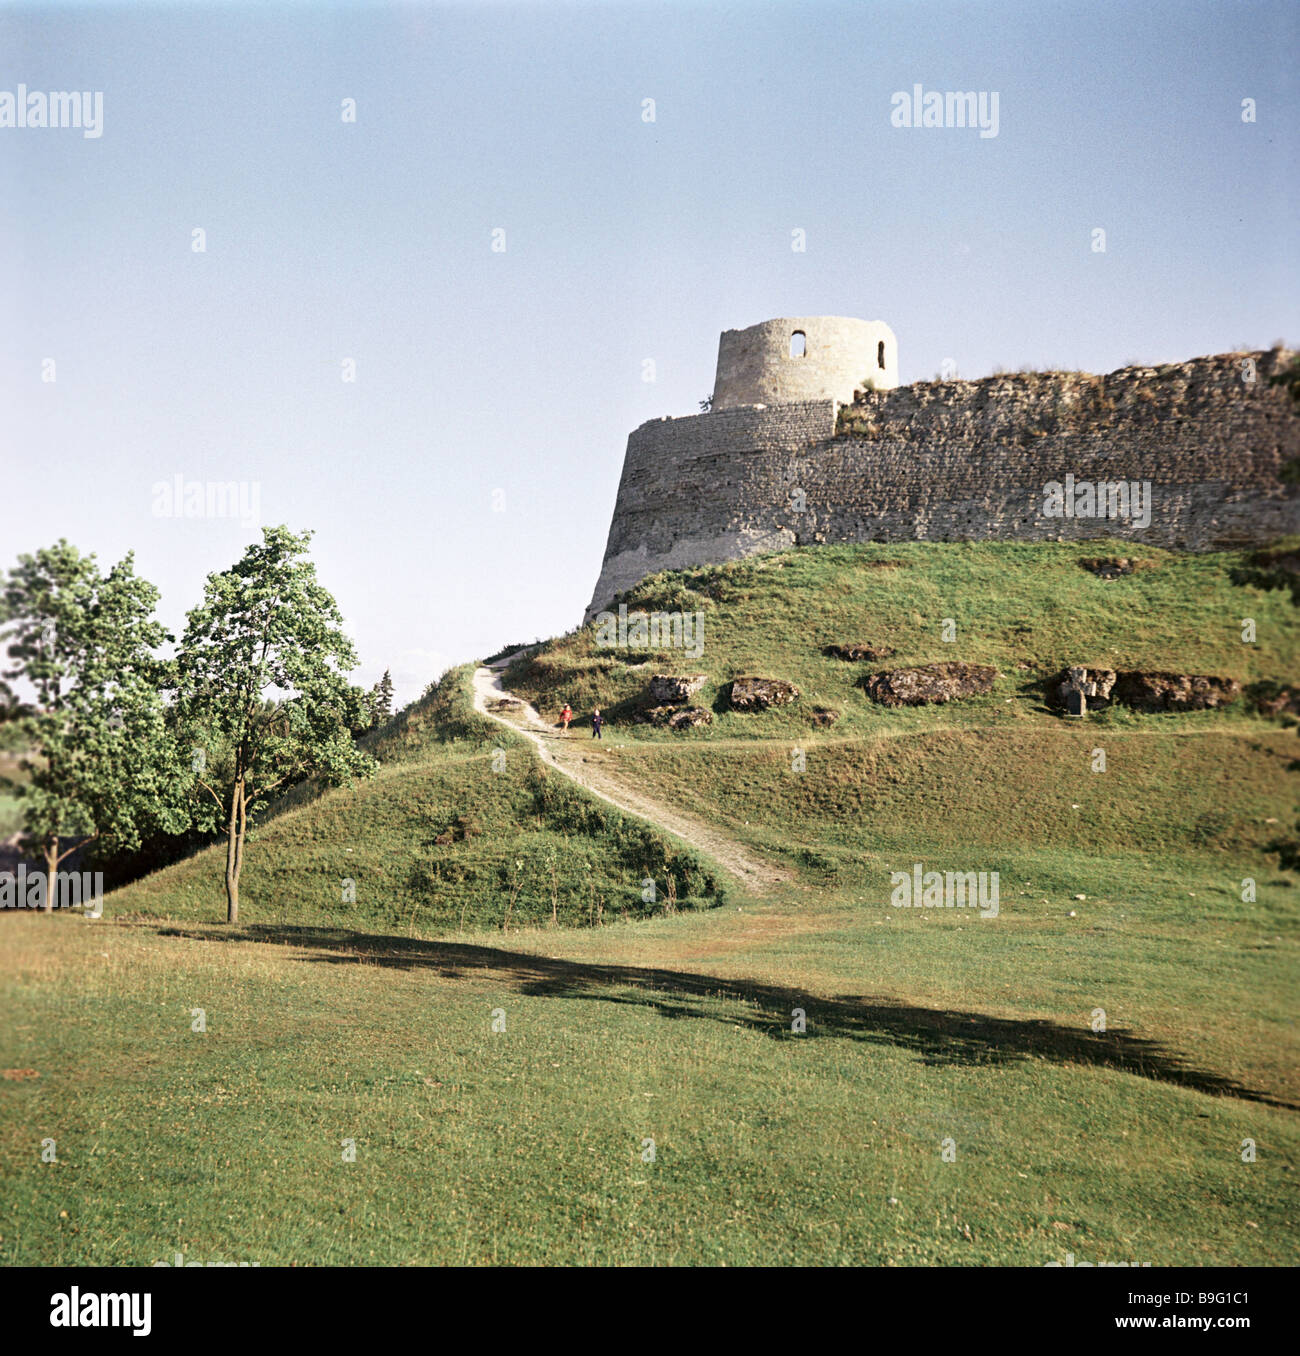 The 14th century Izborsk fortress - Stock Image